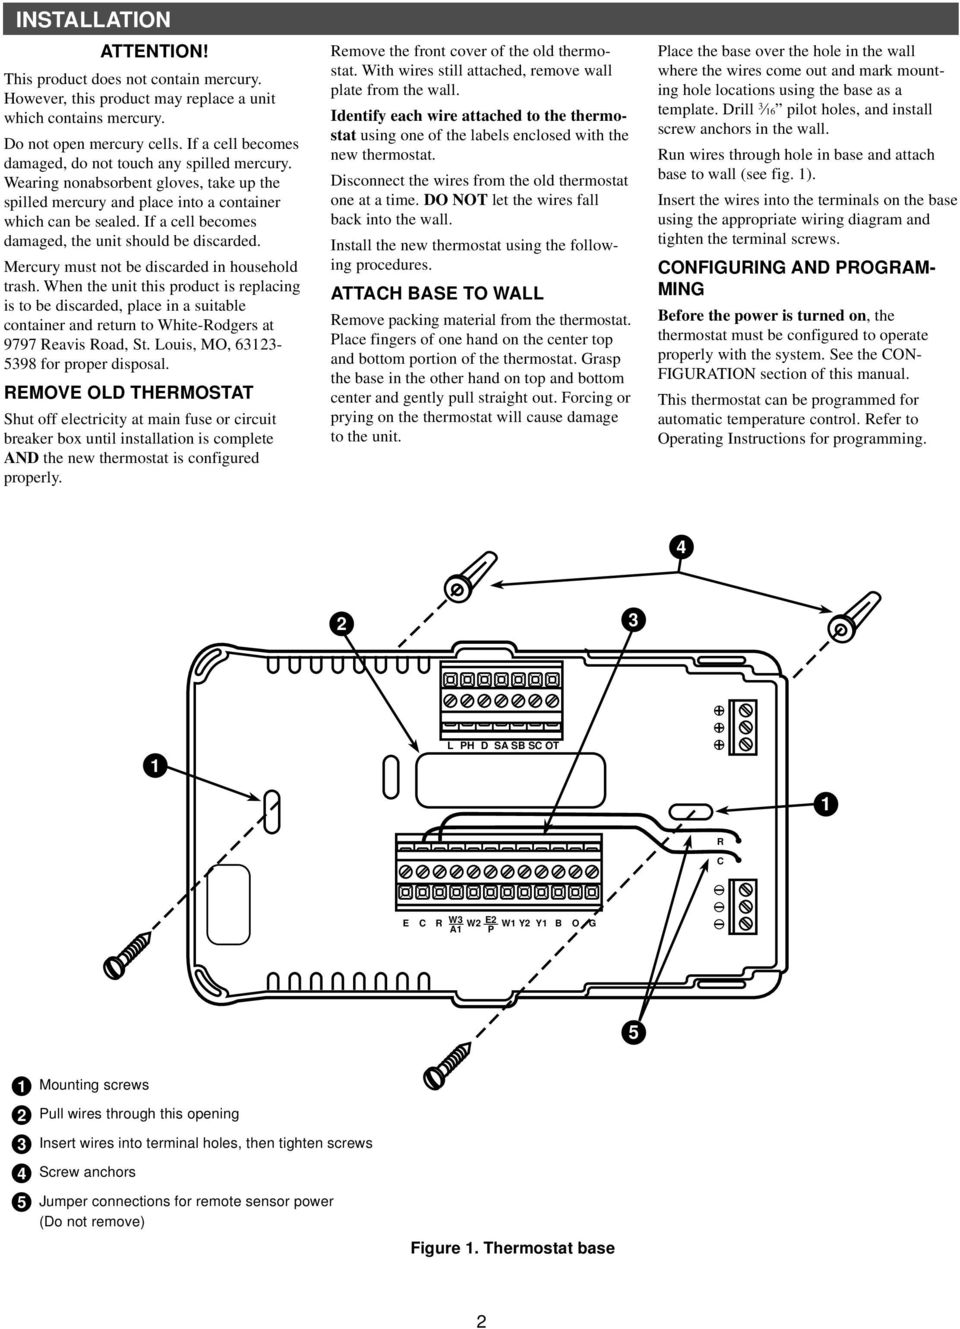 White Rodgers Comfort Set 90 Series Pdf Thermostat Wiring Diagram 1f80 261 If A Cell Becomes Damaged The Unit Should Be Discarded Mercury Must Not